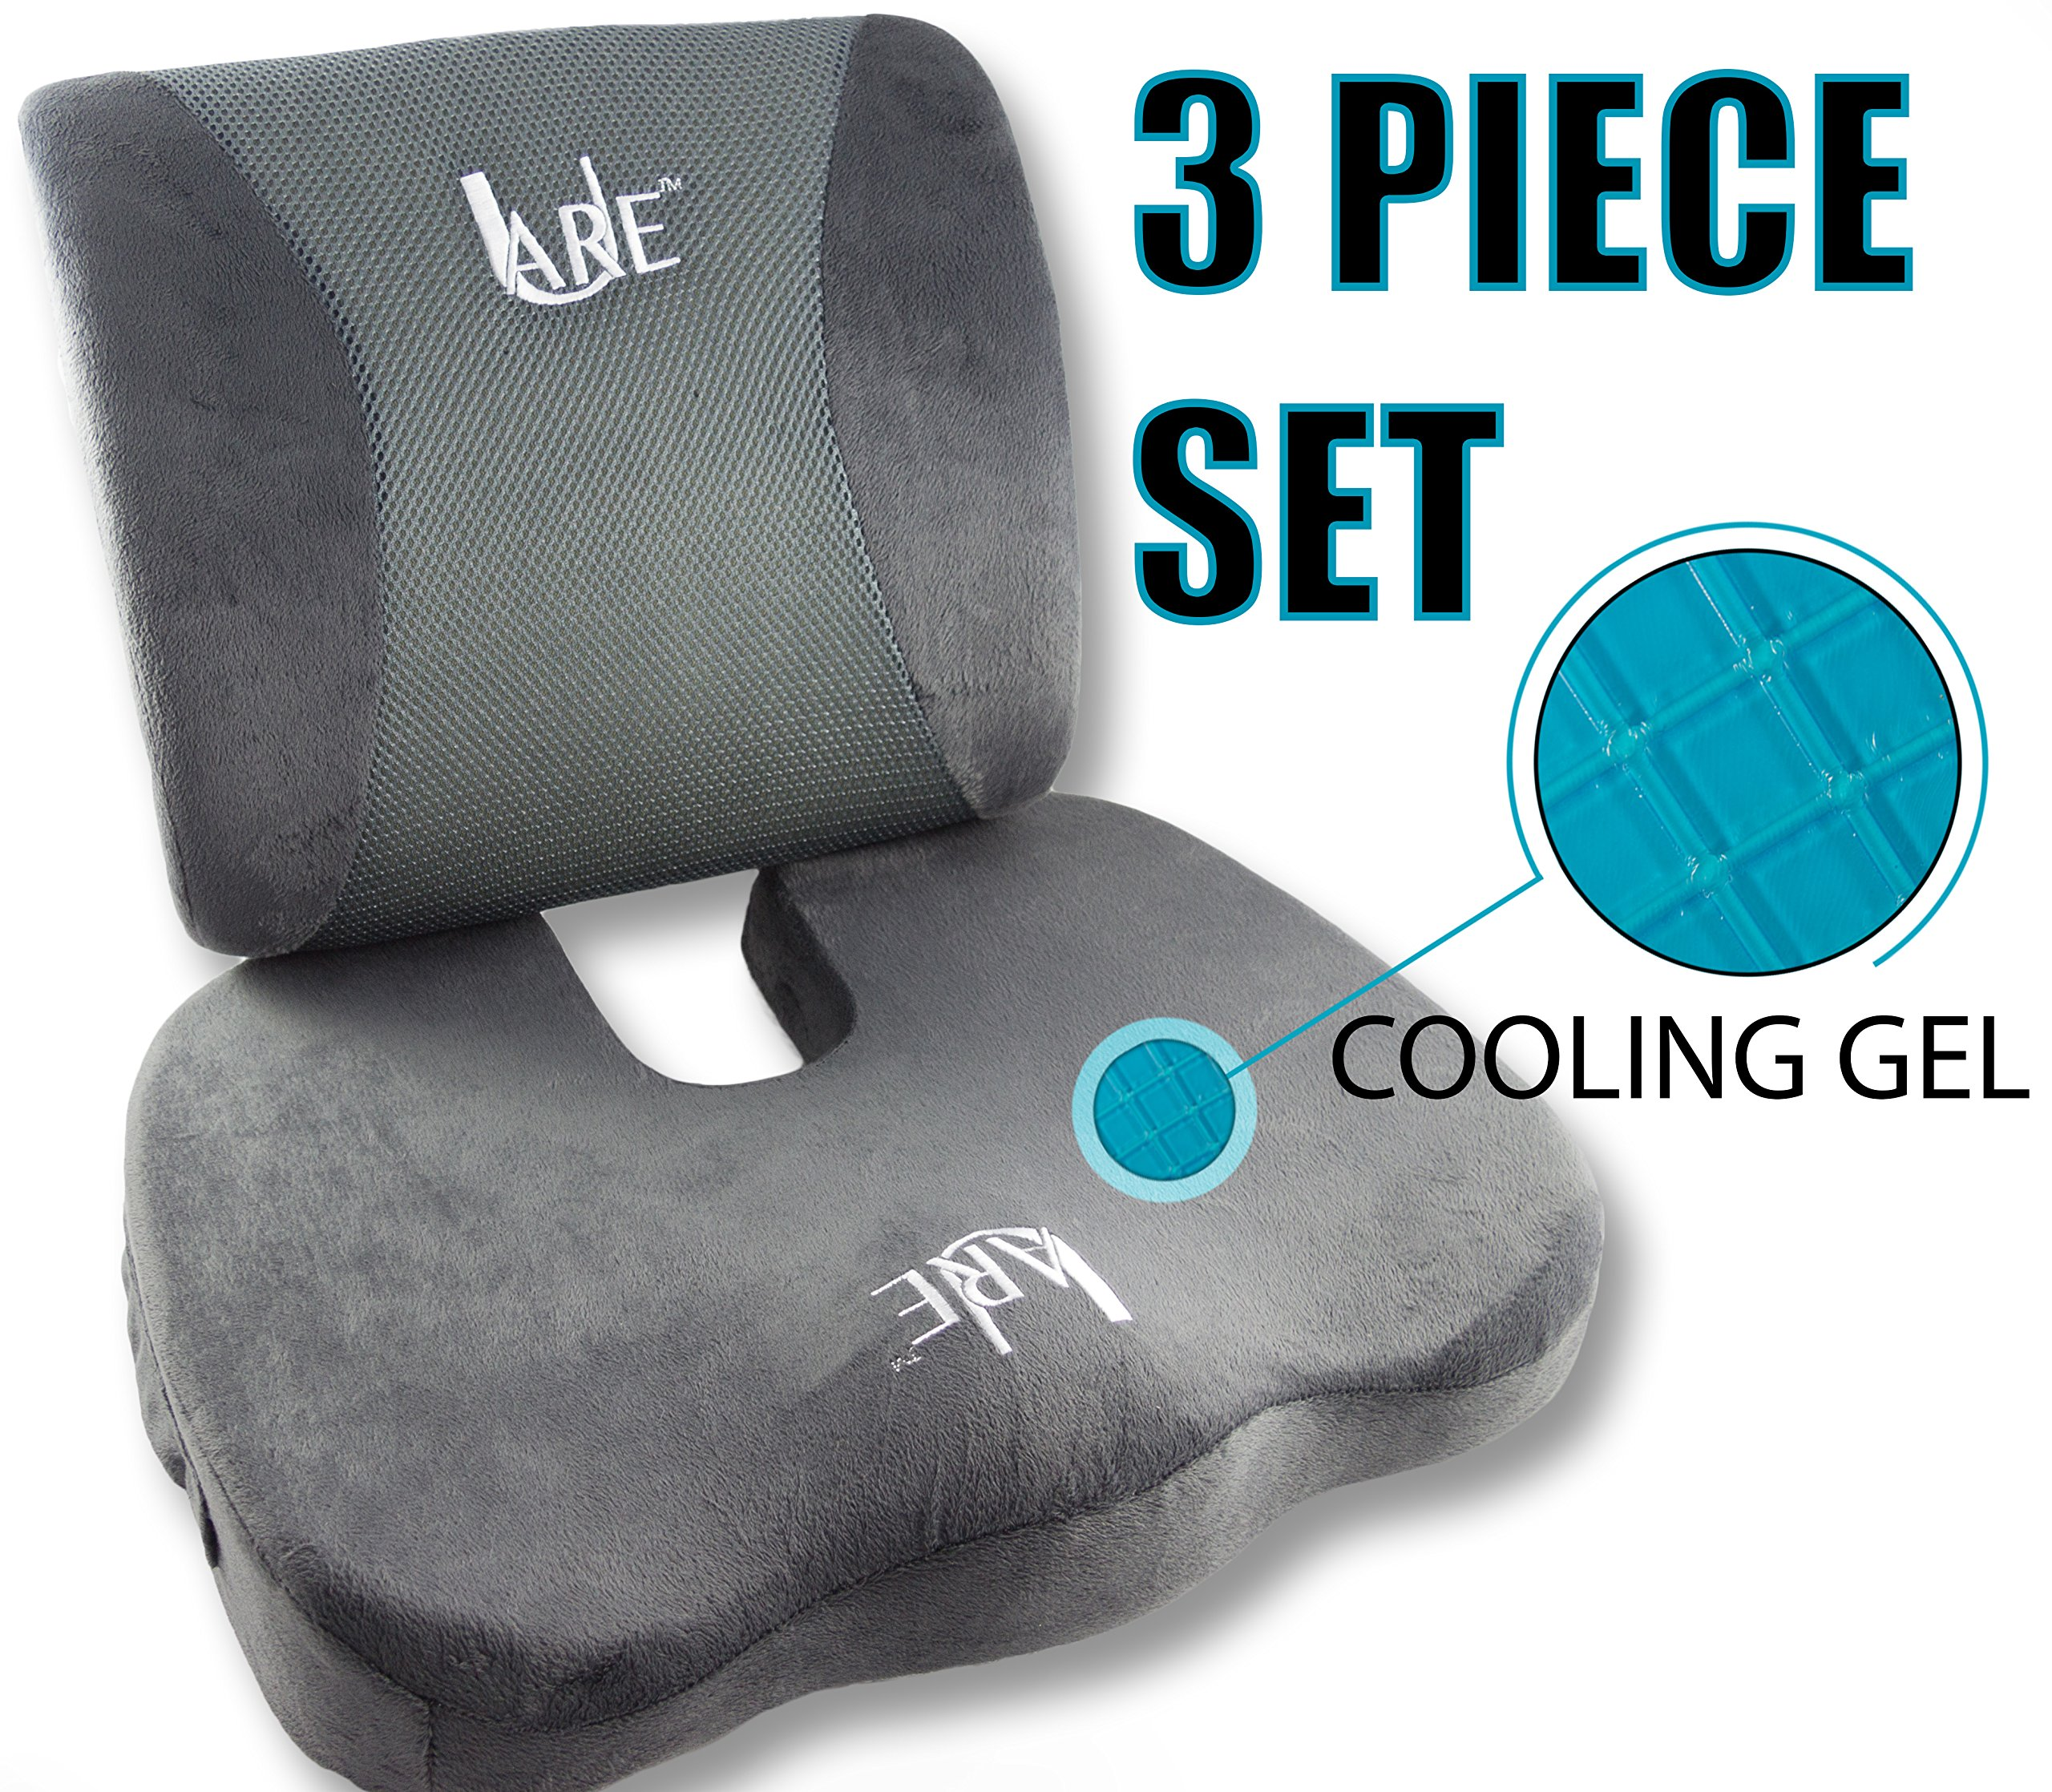 SET: Cool Gel Memory Foam Seat Cushion with Rain Cover and Lumbar Support Pillow for Office Chair and Car Seat Cushions - Ultimate Comfort Set Relieves Back Pain, Tail Bone Pain, Sciatica Seat Cushion by U-Are